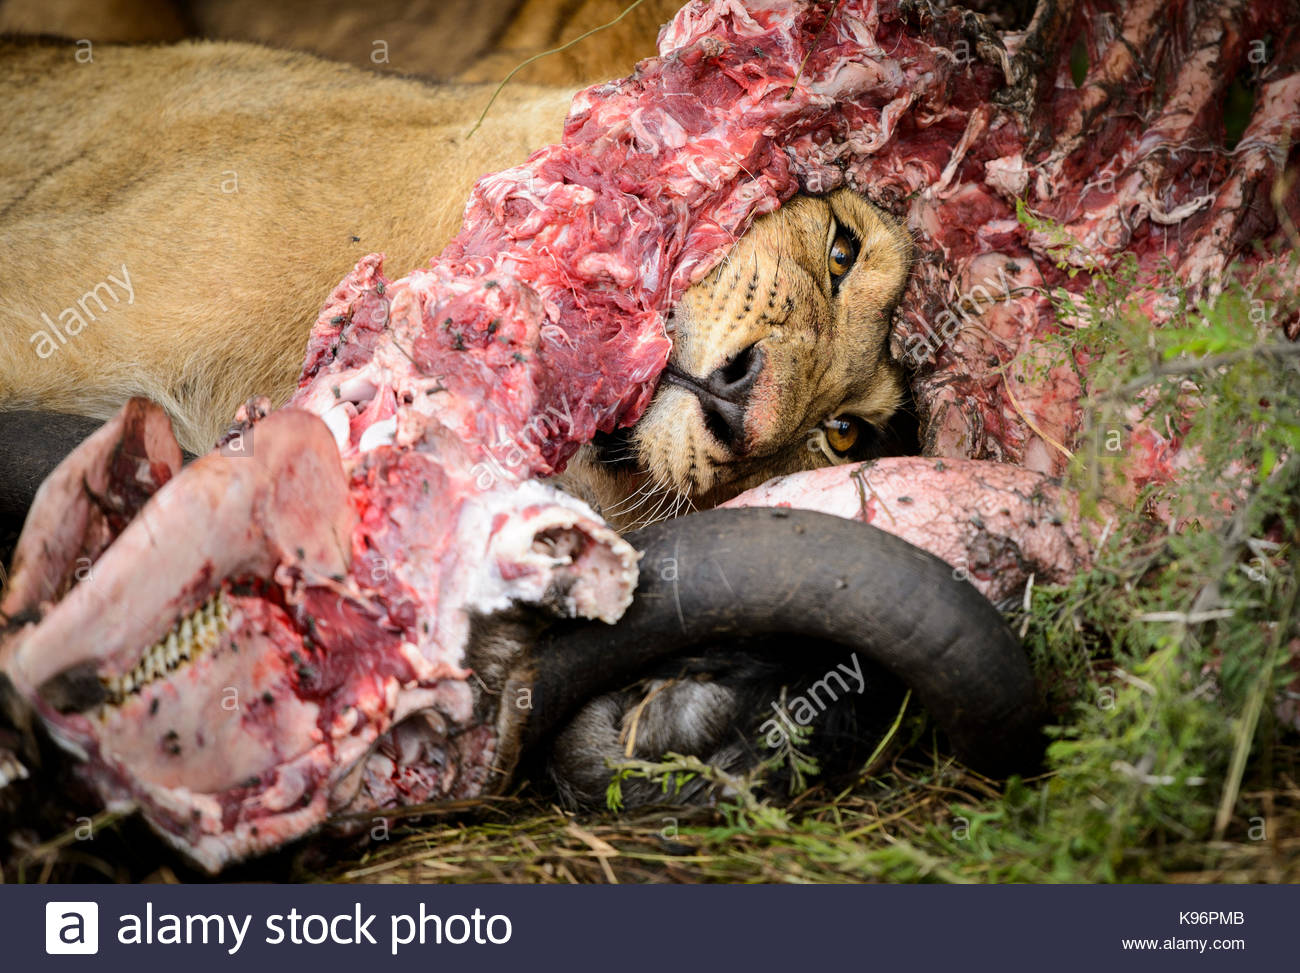 Young lion eating a carcass of a dead wildebeest. - Stock Image